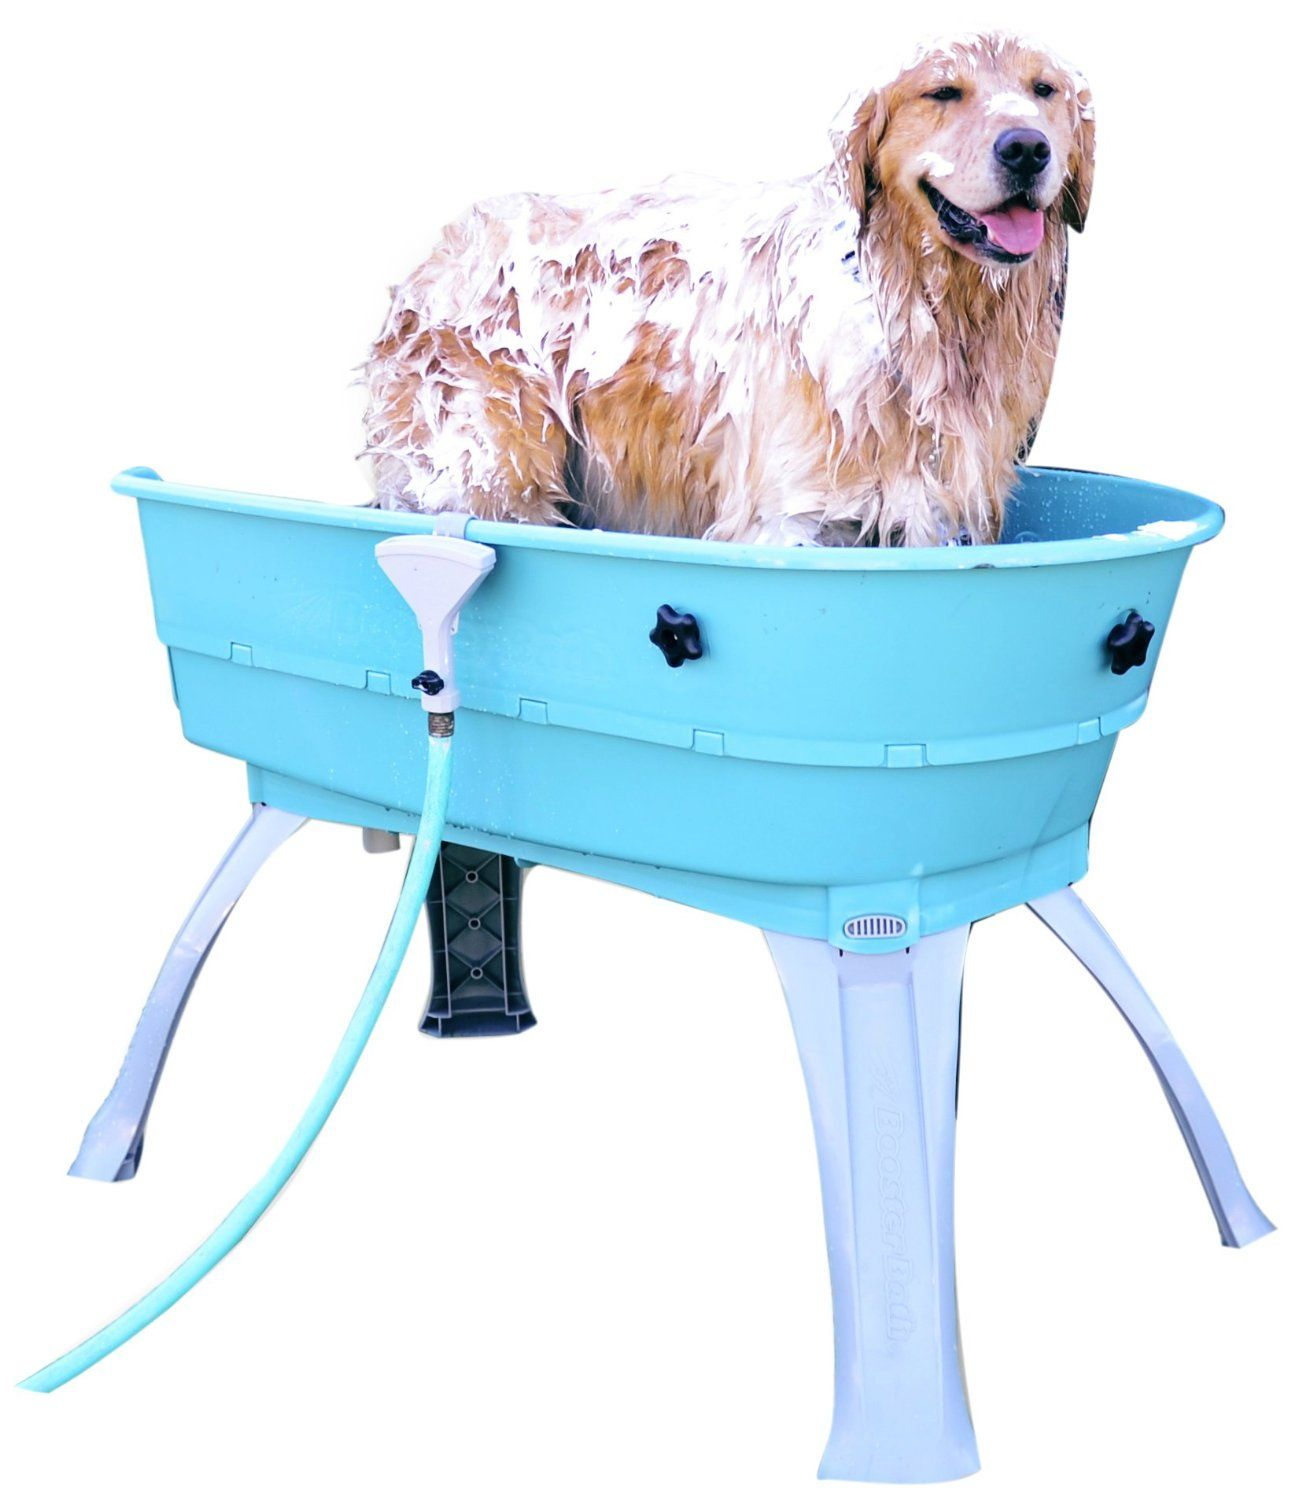 Nice Booster Bath 3040 Blue Large Dog Wash   Dog Owners Experience The Most  Effective, Lightweight, Portable And Affordable Dog Bath That Thousands  Have Fallen ...